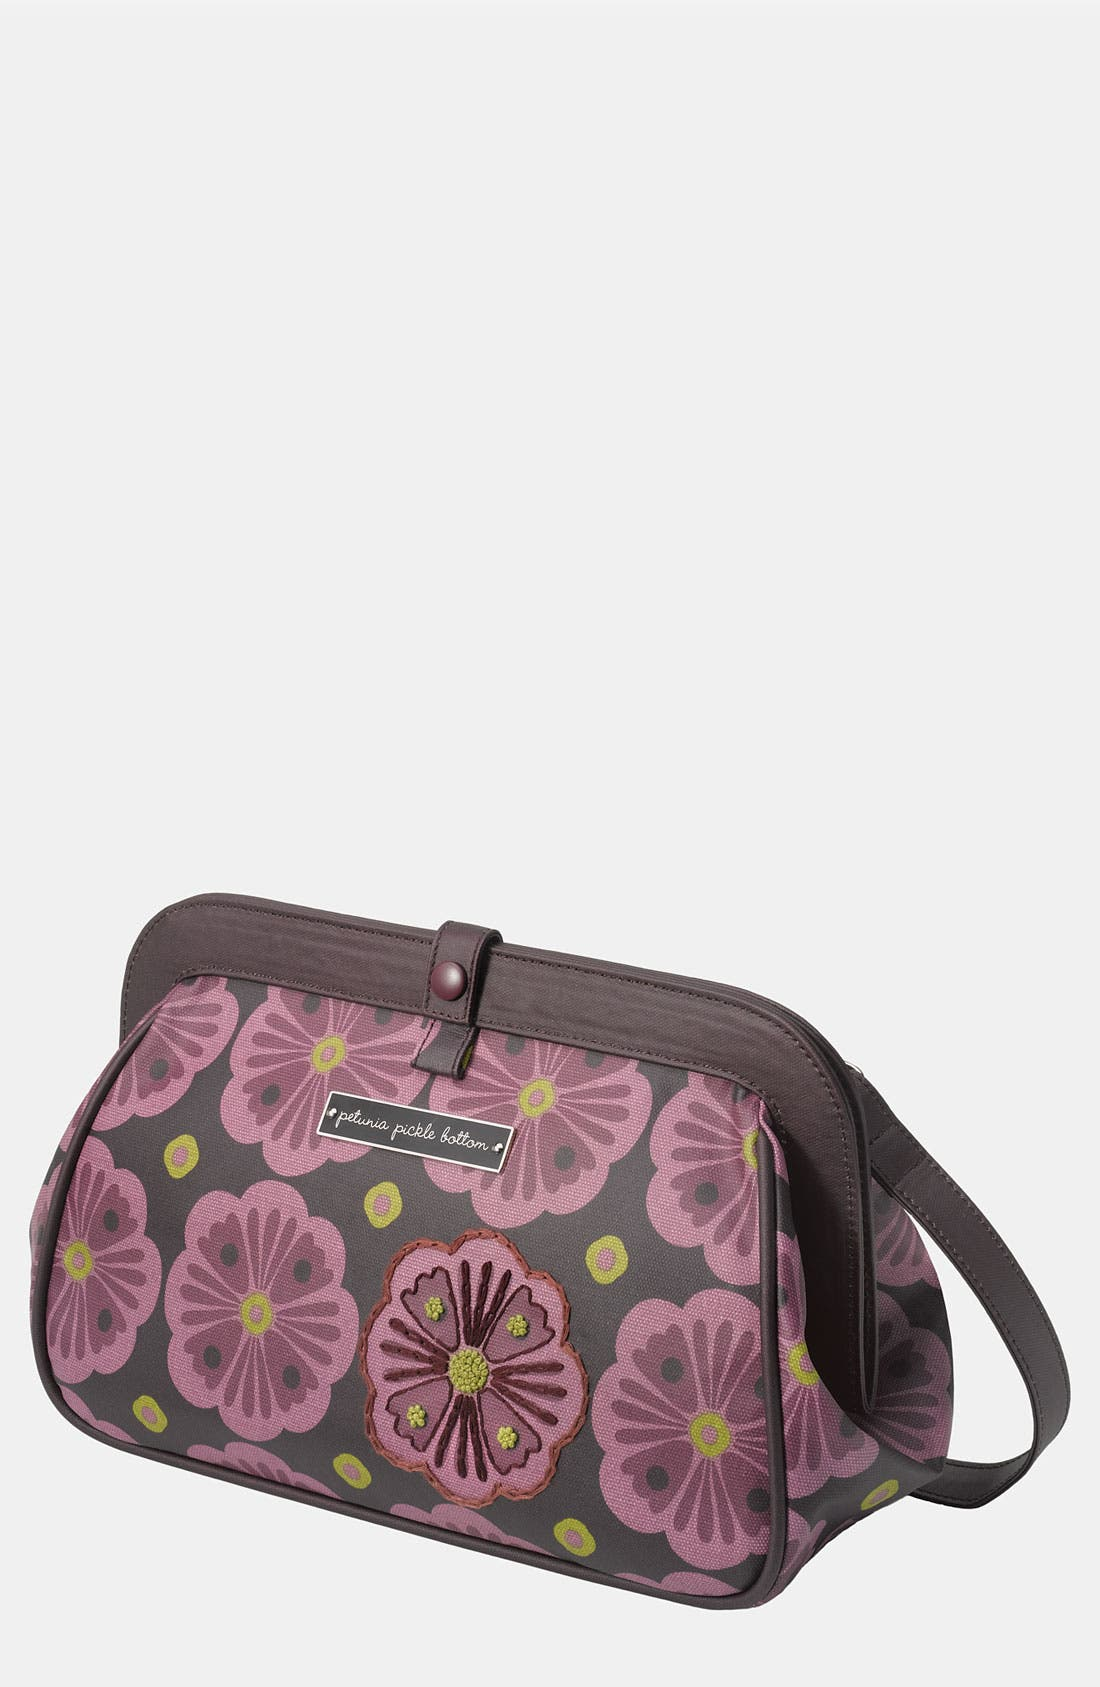 Main Image - Petunia Pickle Bottom Coated Canvas Clutch